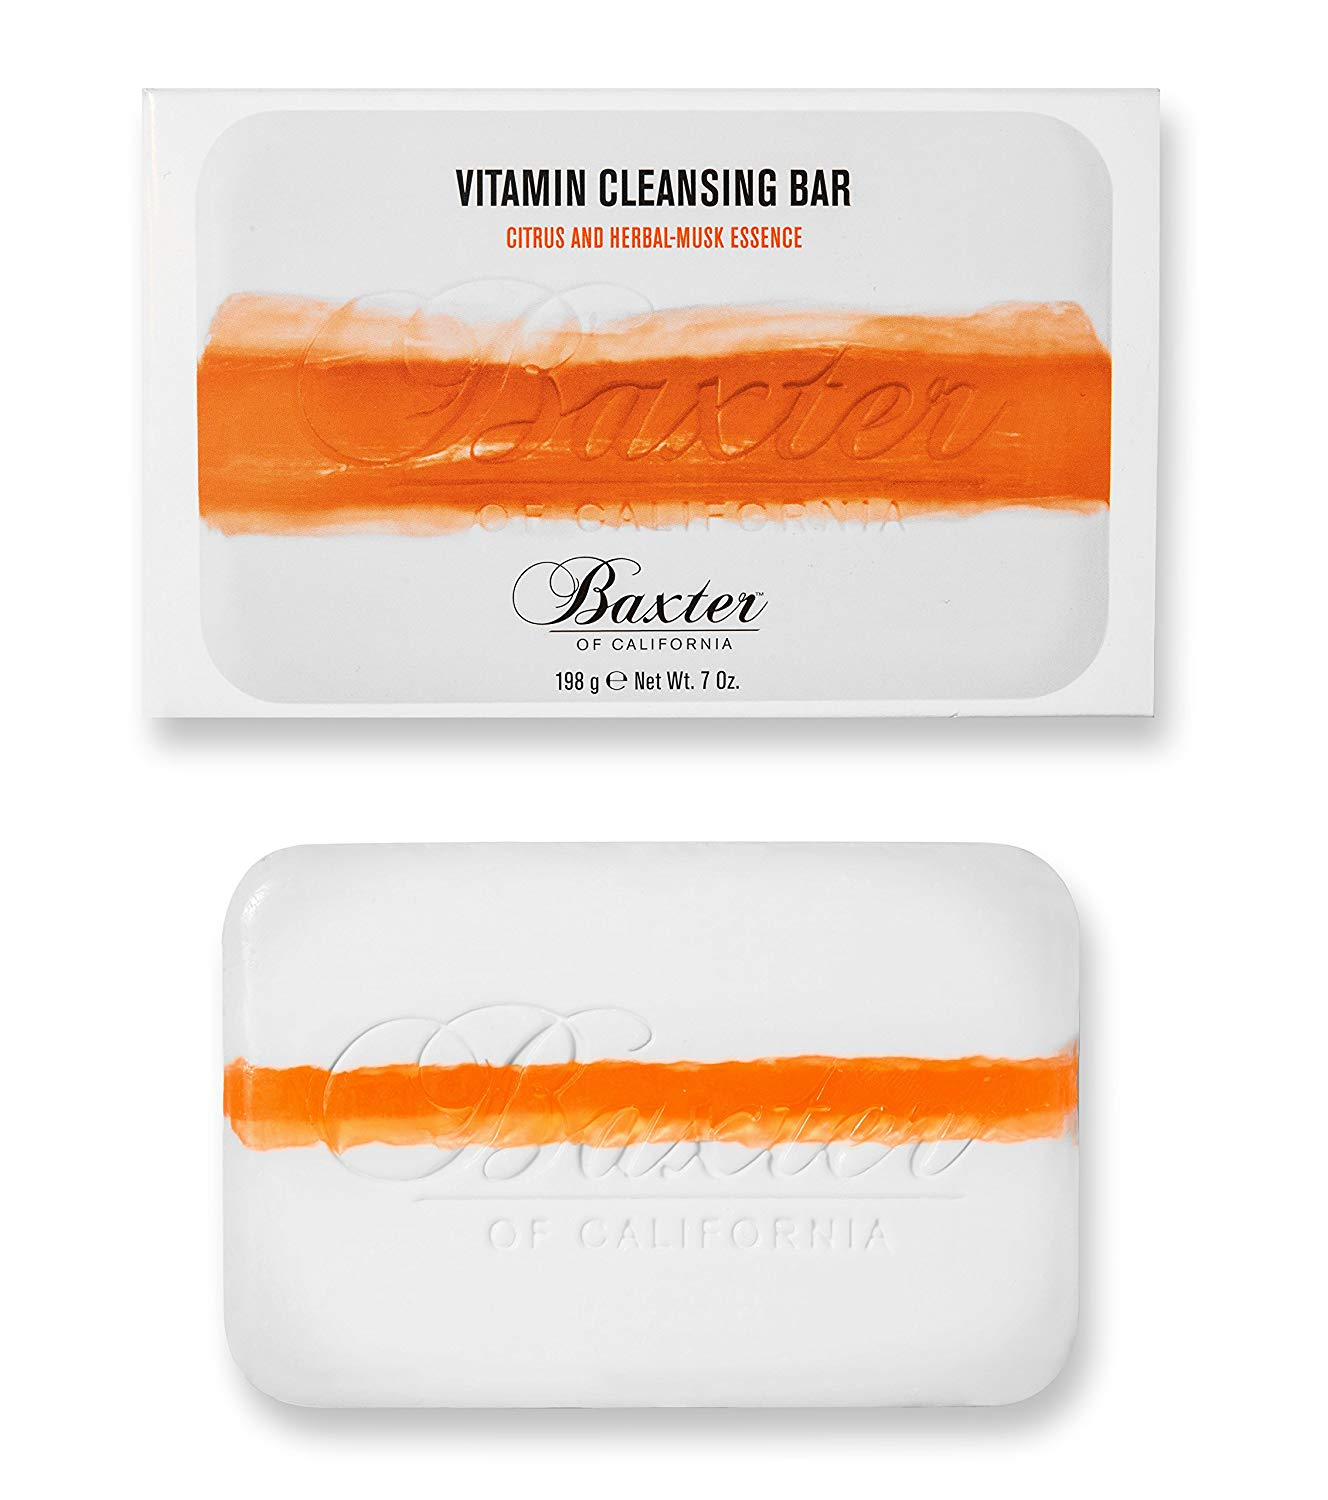 Baxter of California Vitamin Cleansing Bar - Citrus / Herbal Musk